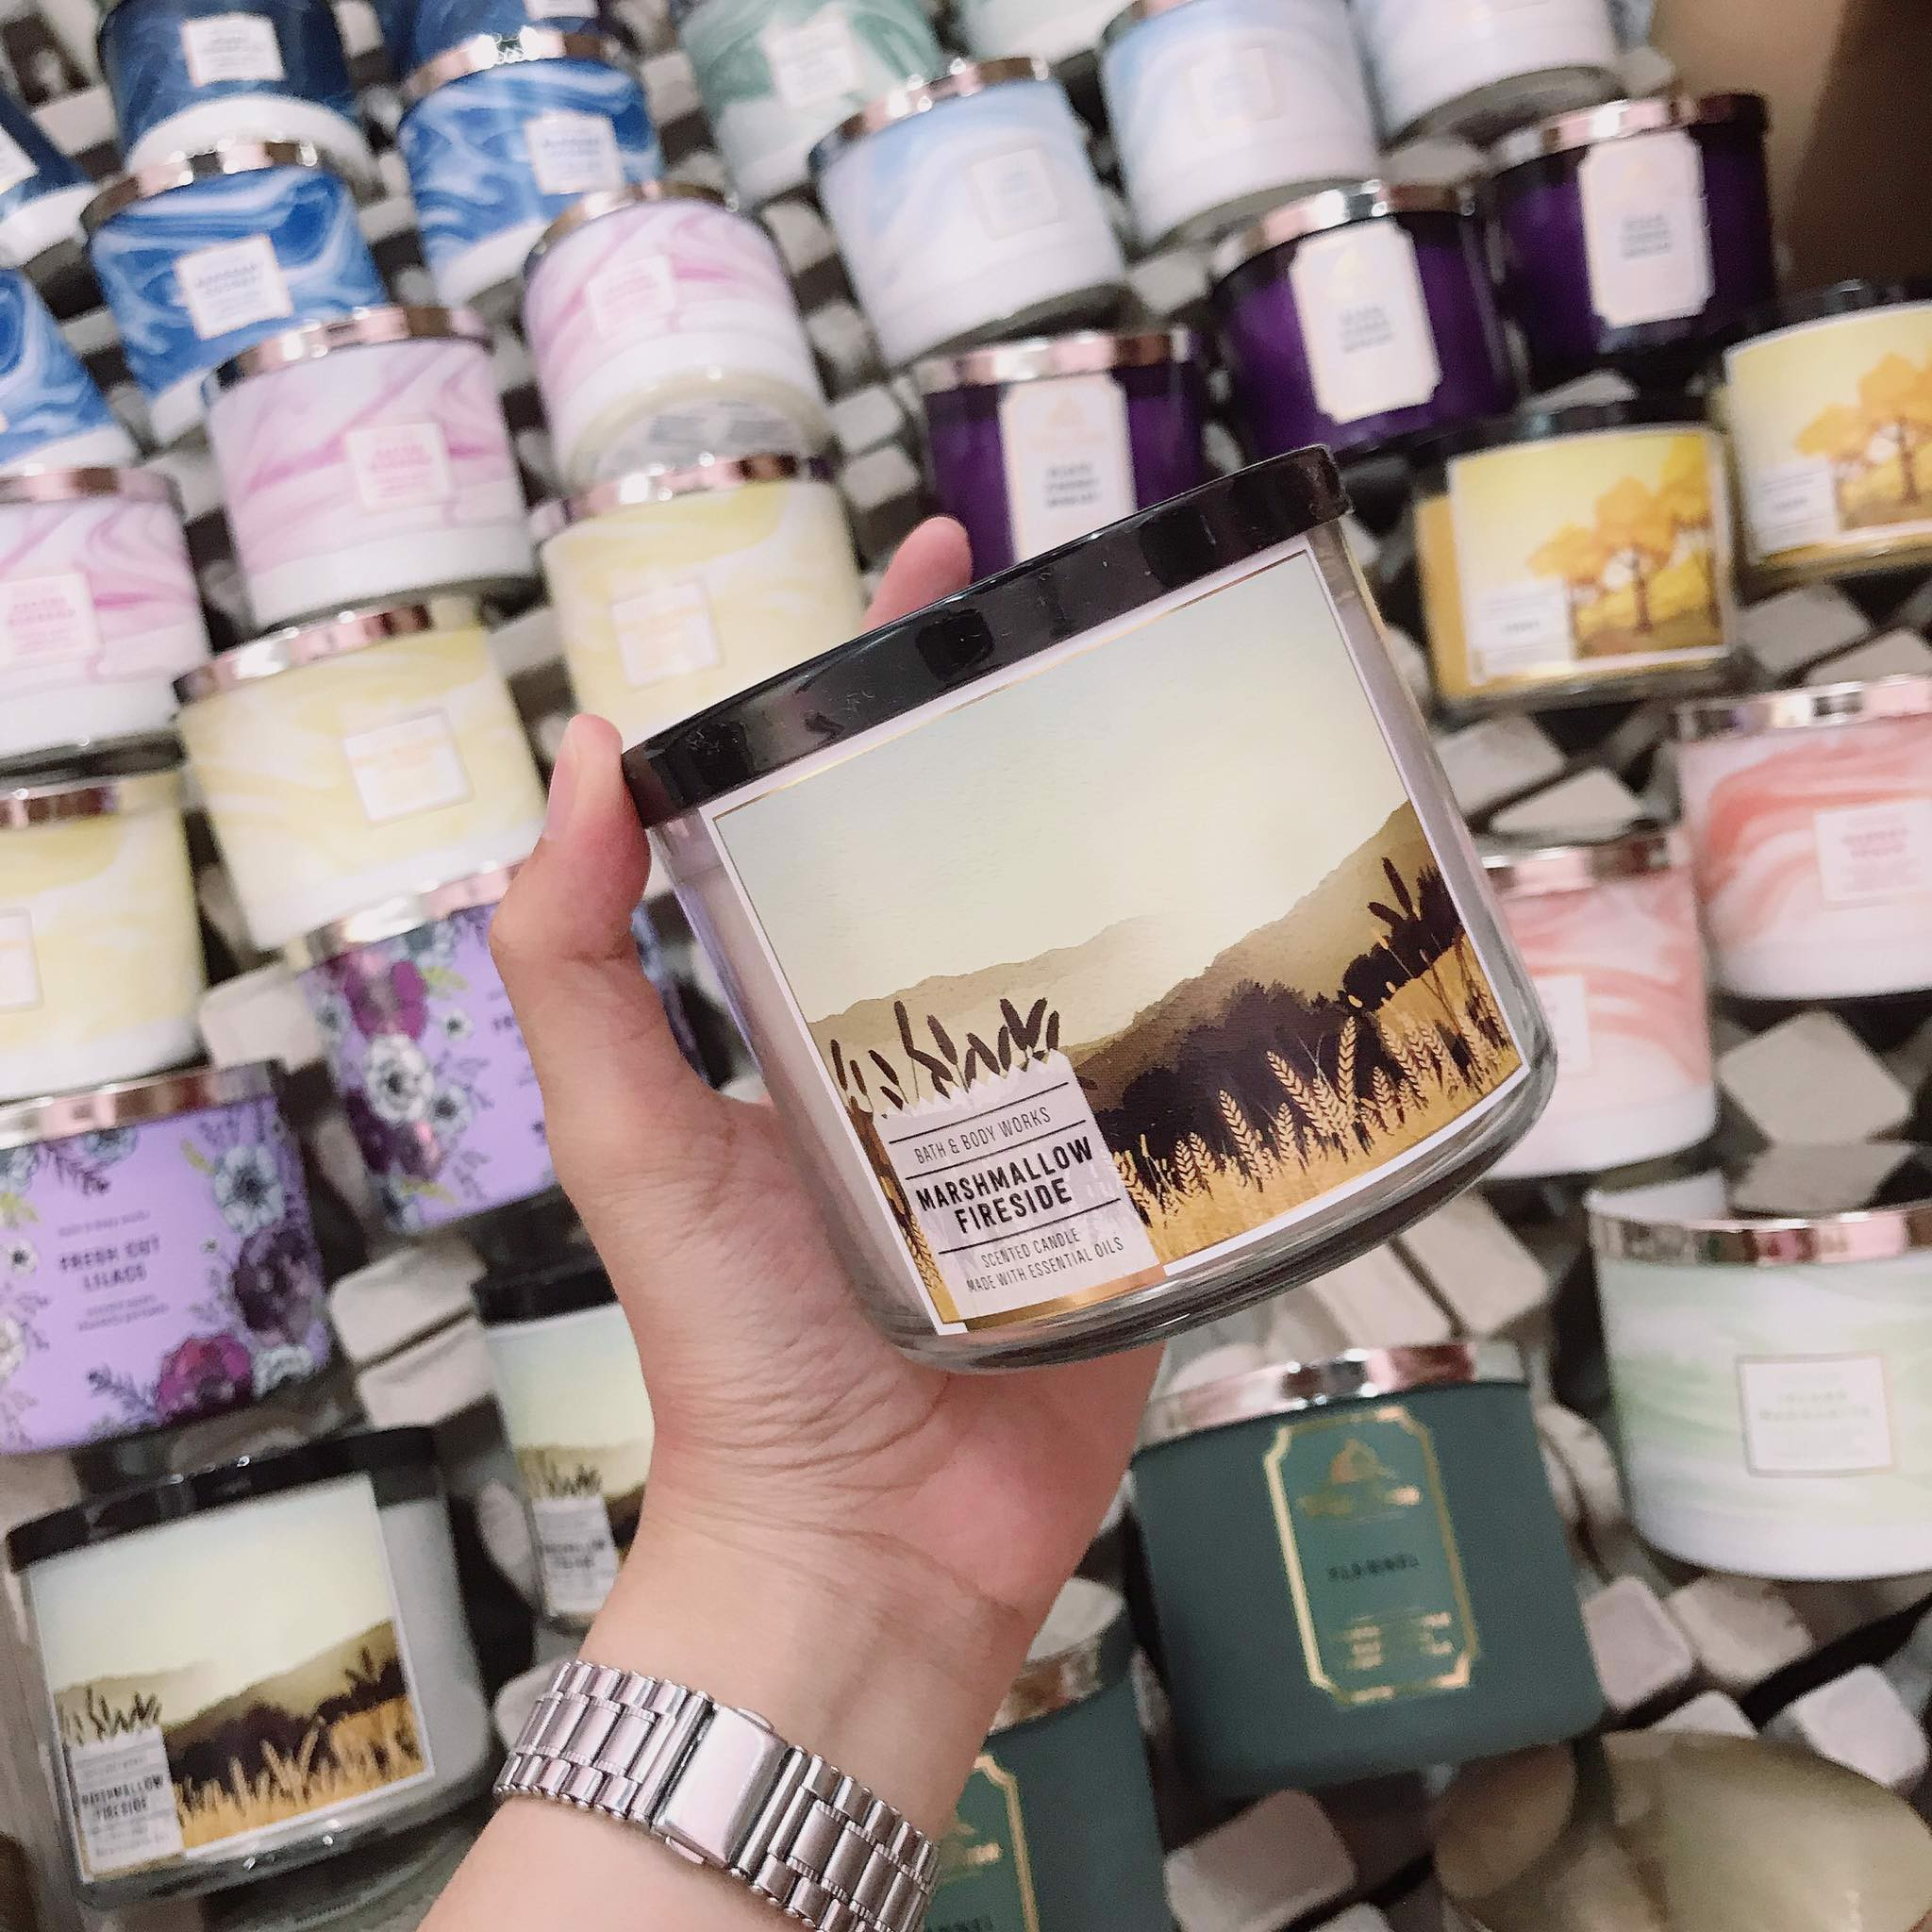 Nến Thơm 3 Bấc Bath & Body Works Marshmallow Fireside Scented Candle